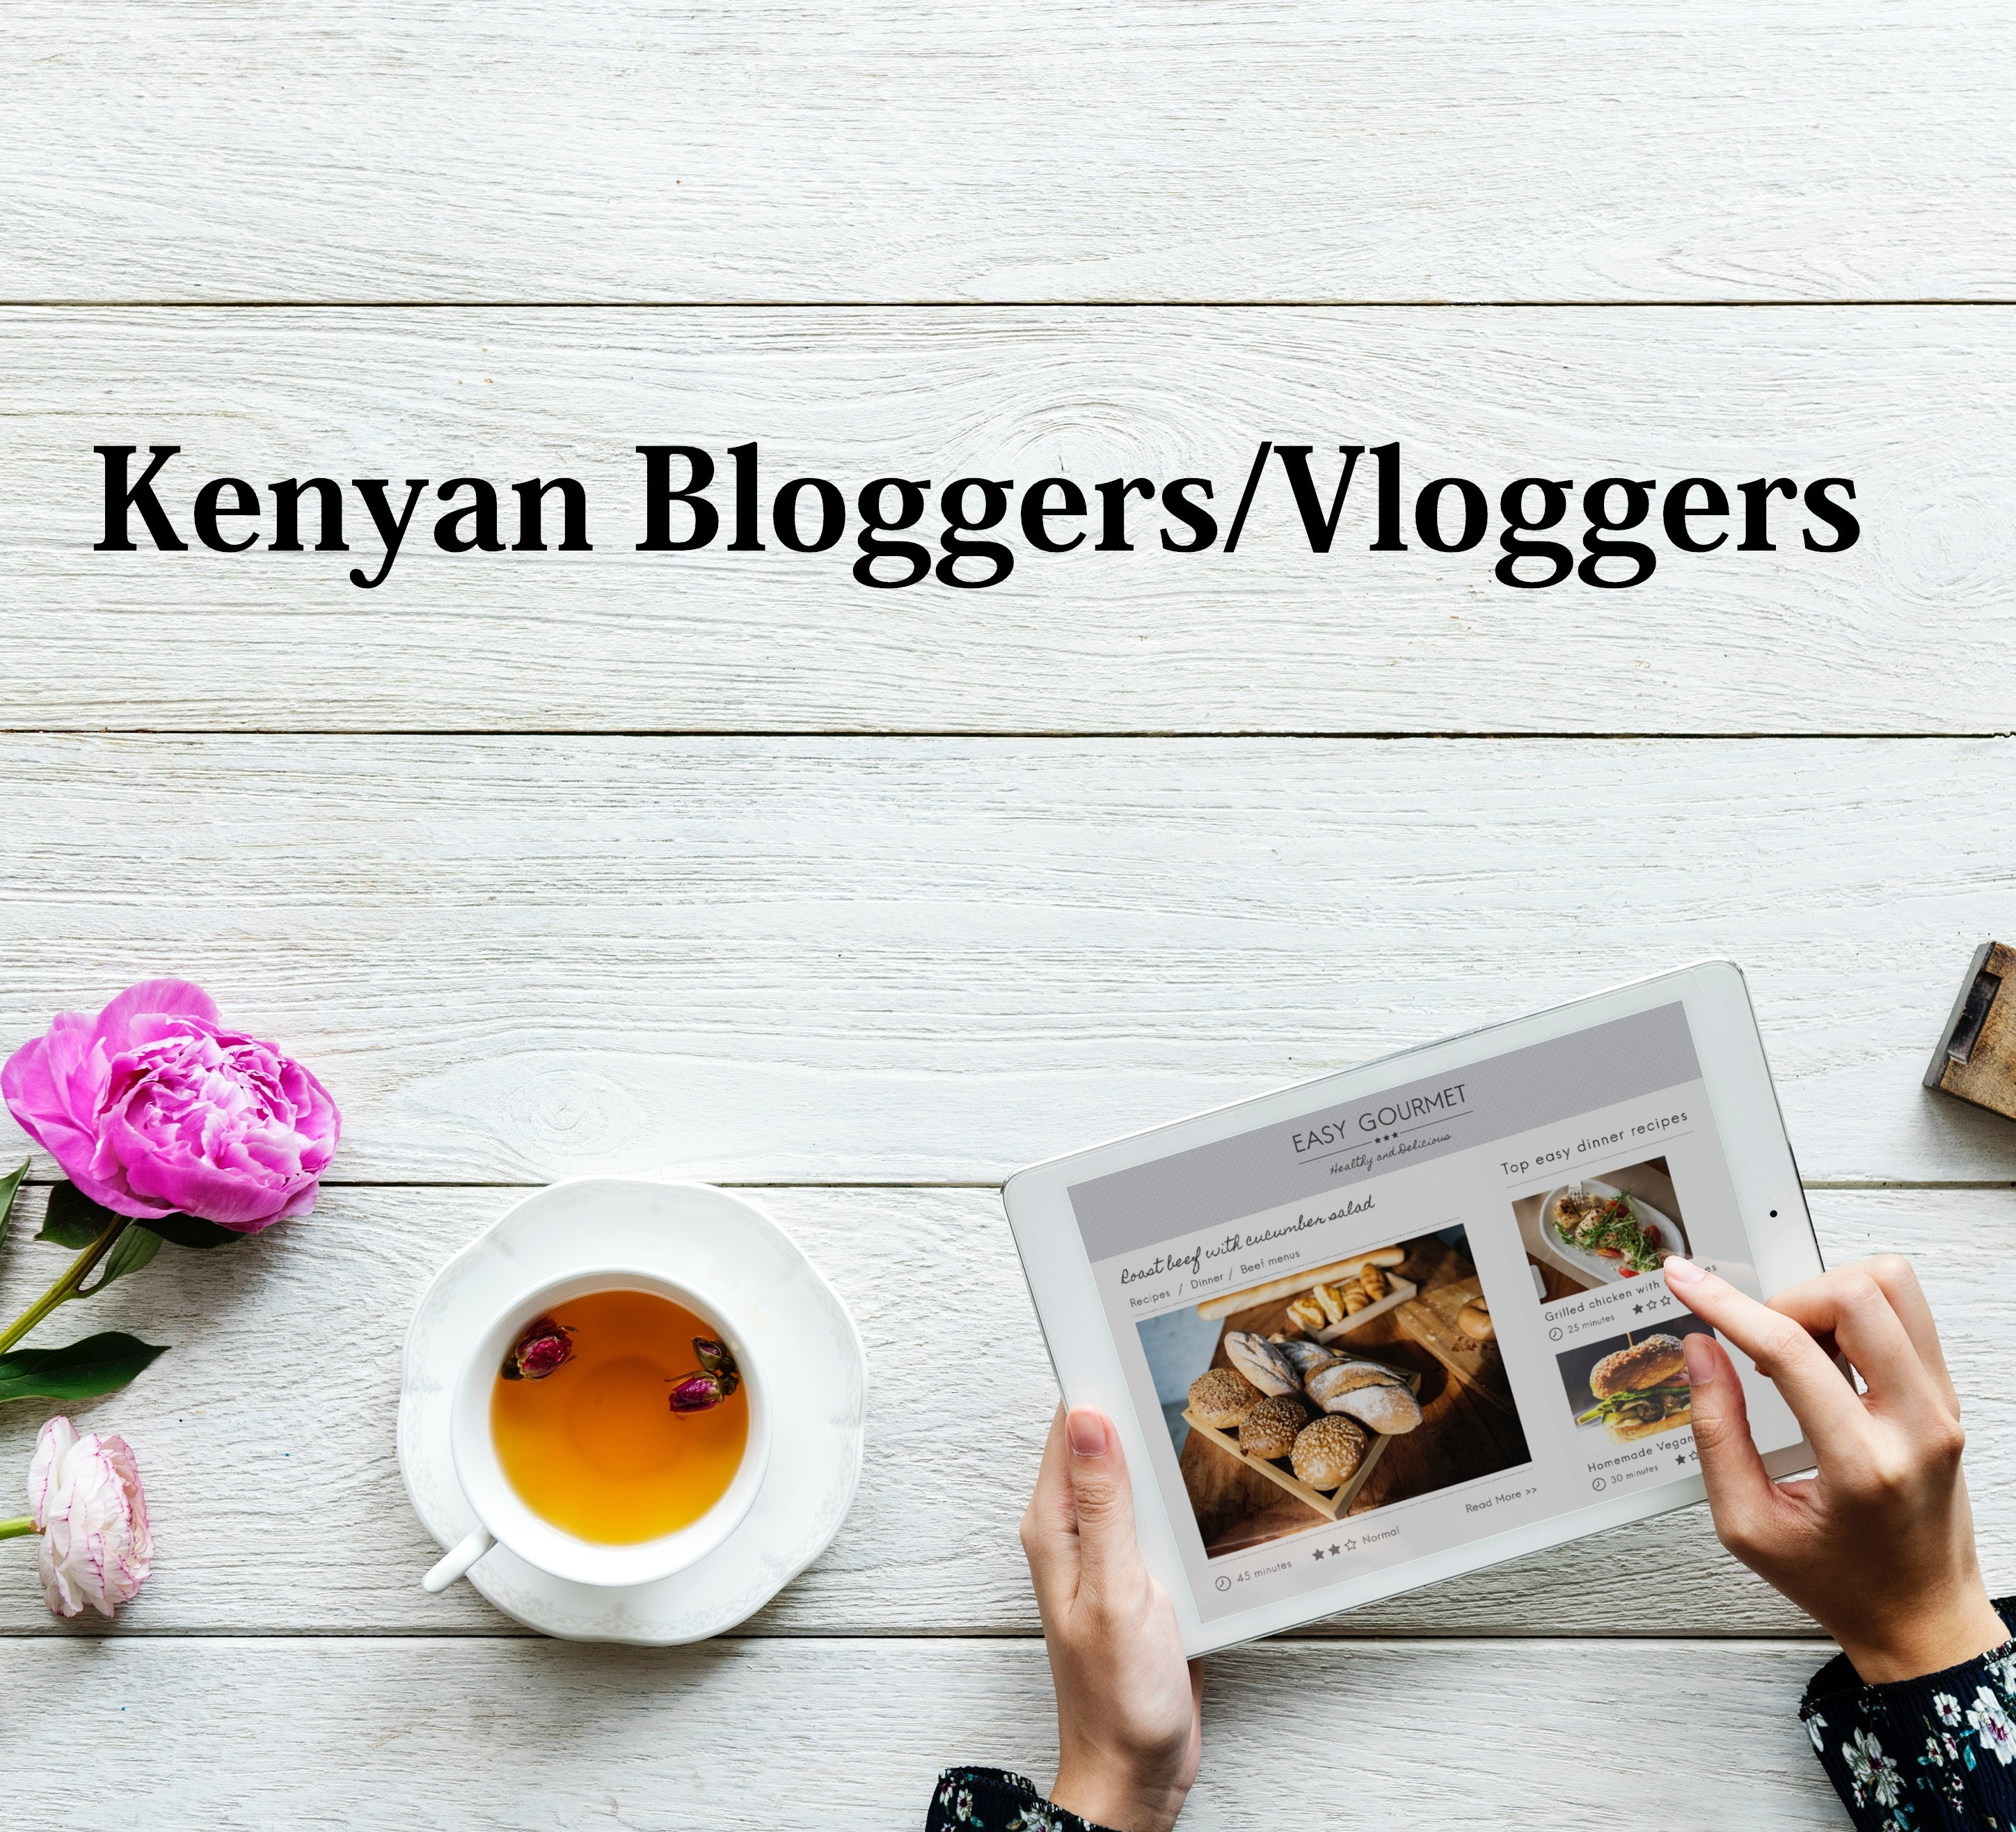 Kenyan Bloggers / Vloggers You Should Be Following - Lysa Magazine natalie tewa, jay take a pic, joanna kinuthia, wabosha maxine, sharon k mwangi, wanjiru boella